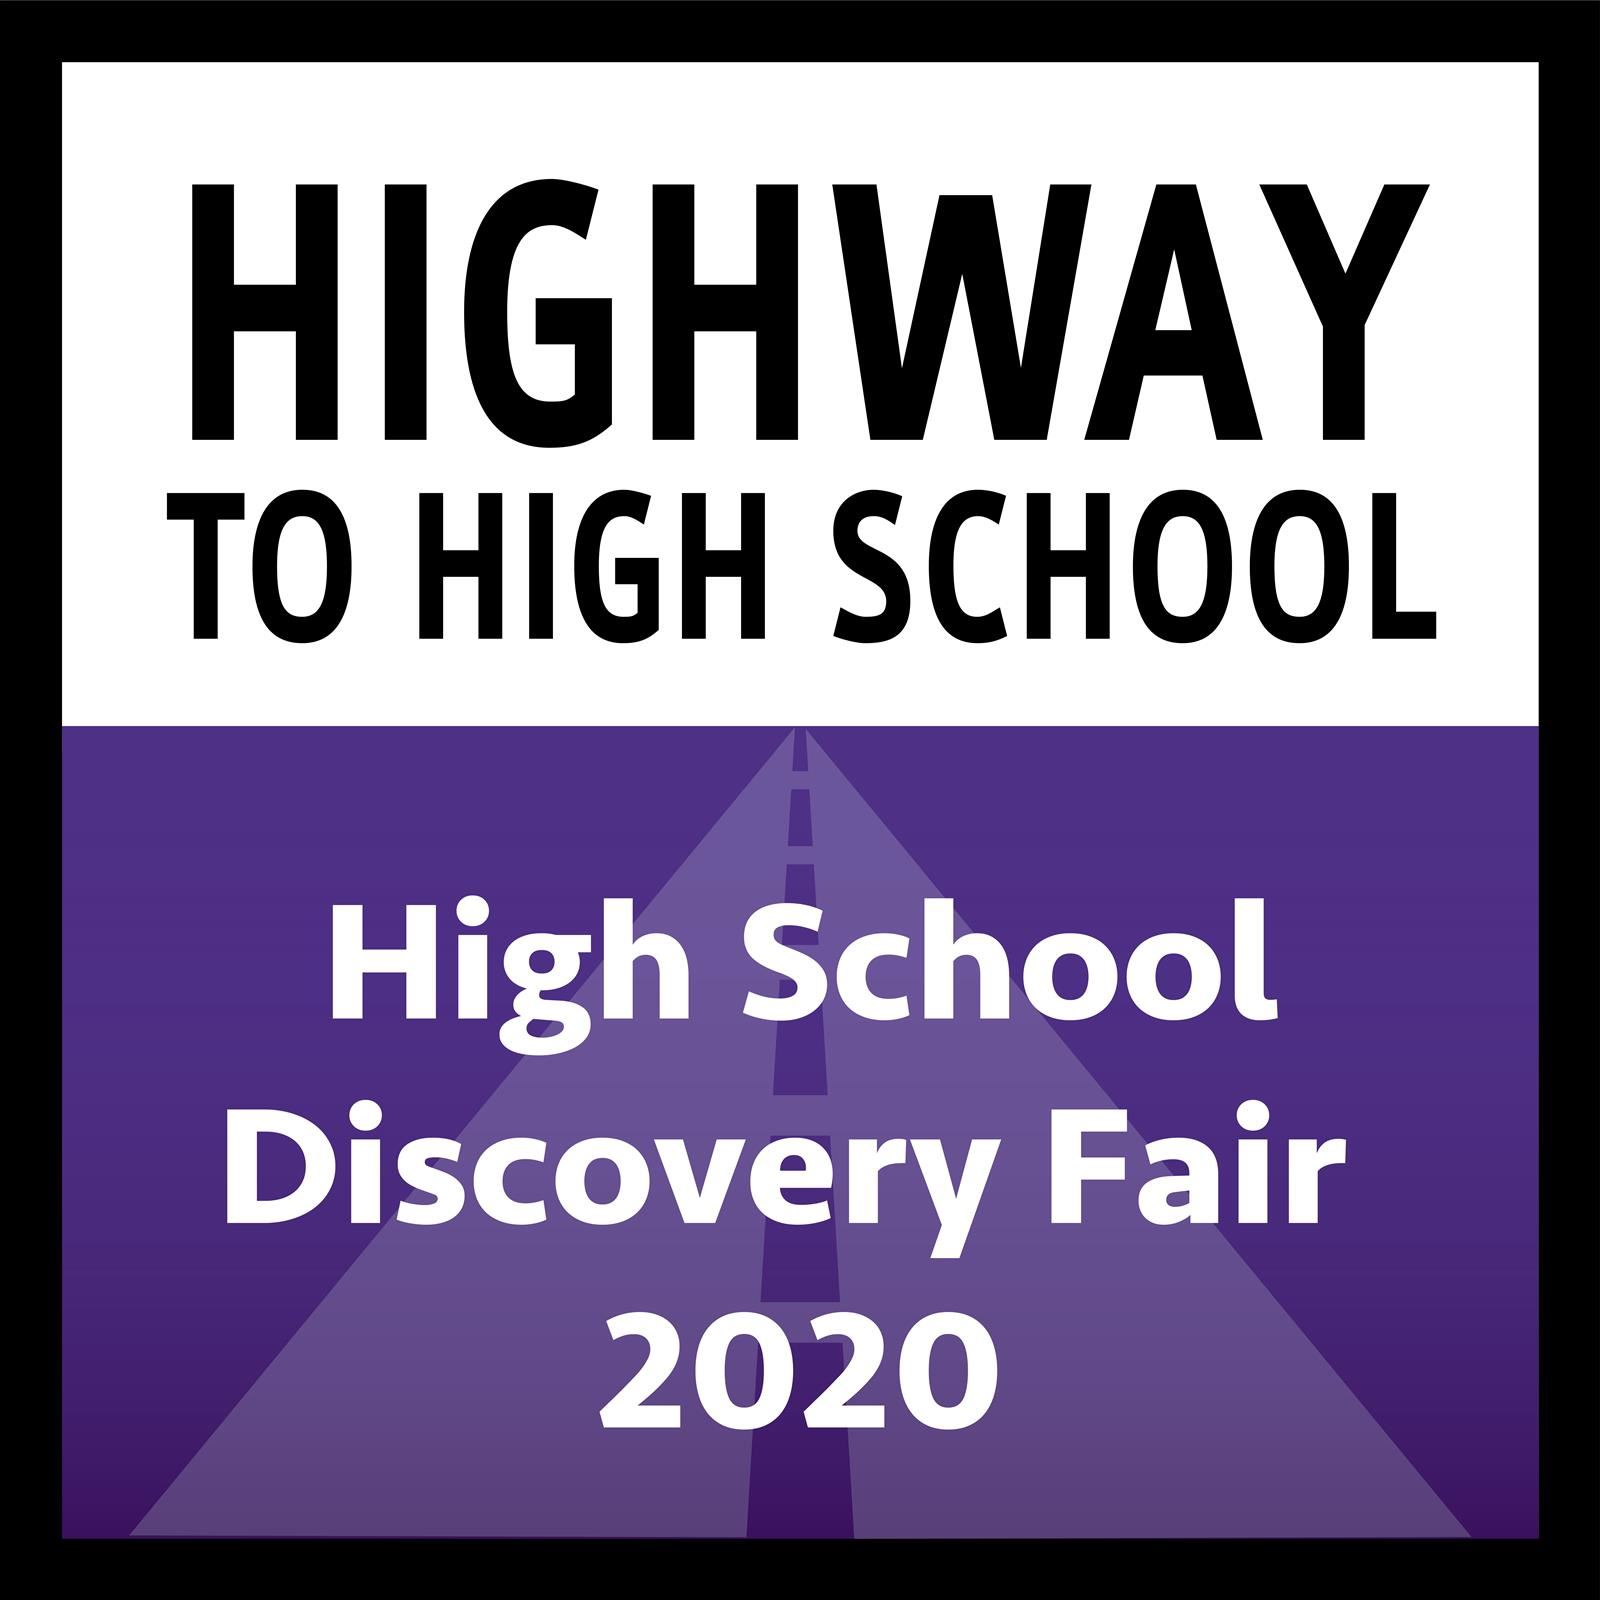 Highway to High School: High School Discovery Fair 2020